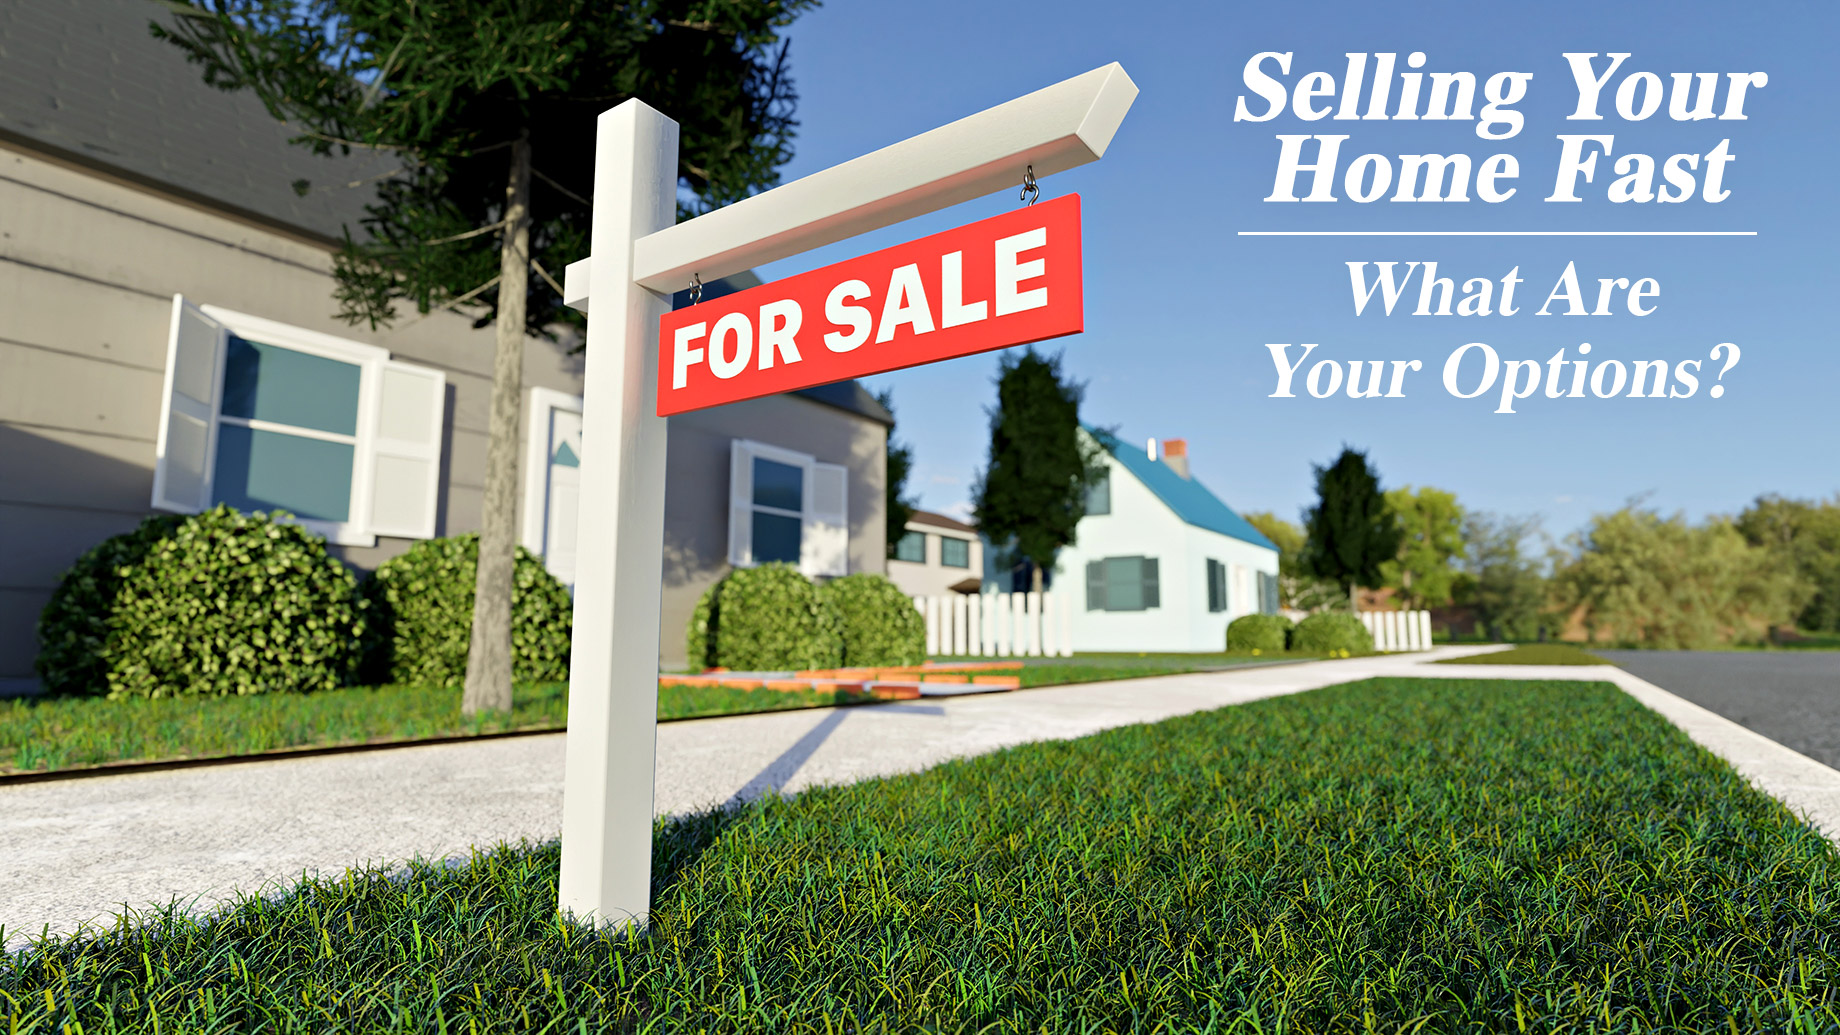 Selling Your Home Fast - What Are Your Options?